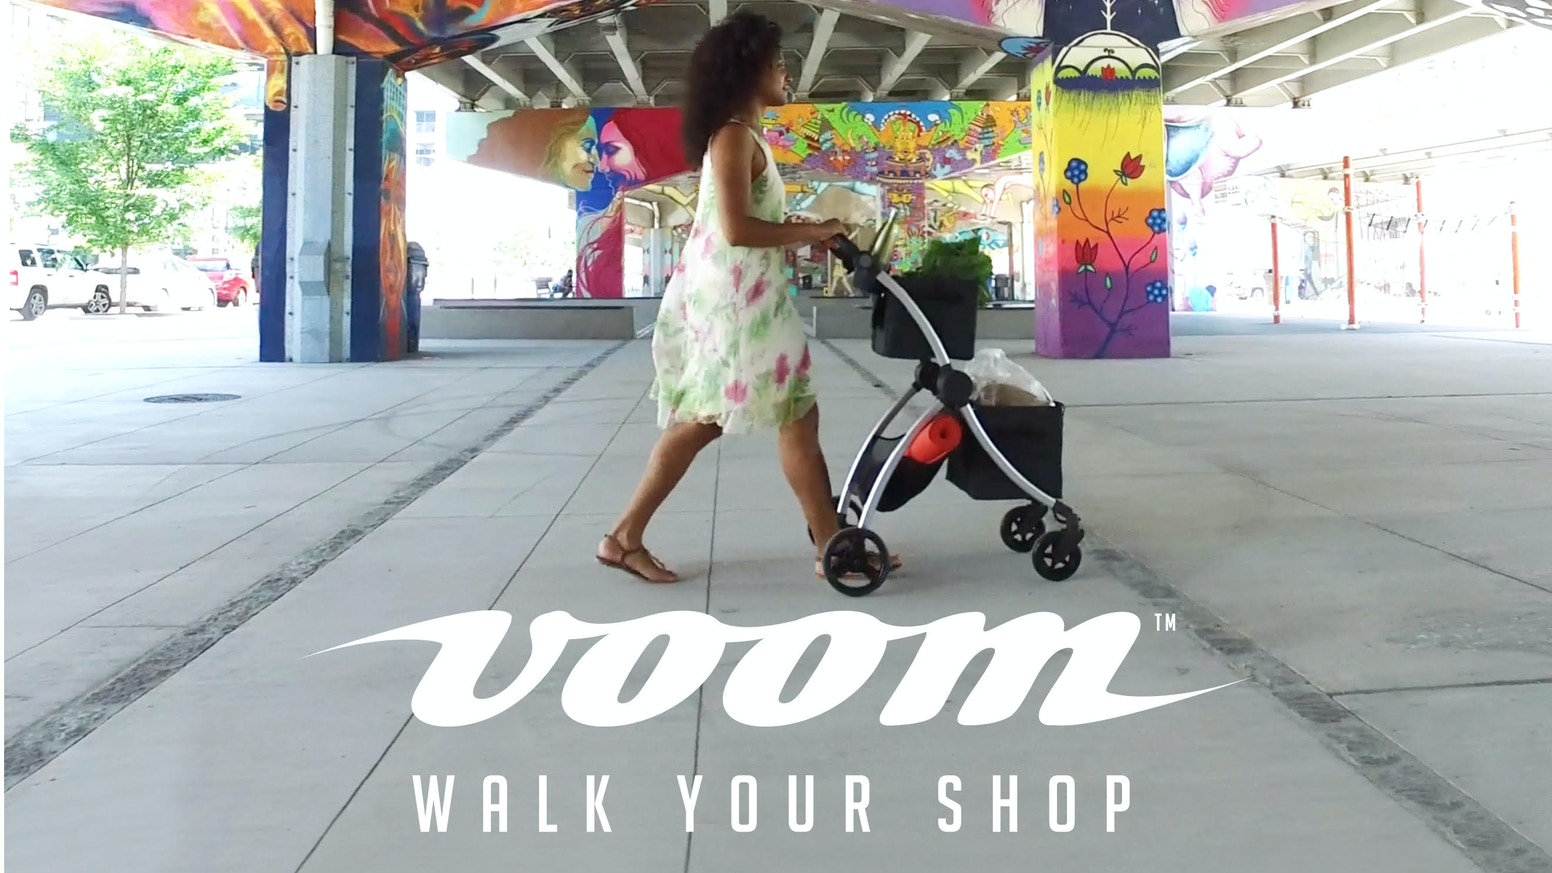 VOOMcart has been designed to make hauling up to 50 pounds around on foot easy, and hey - even fun!